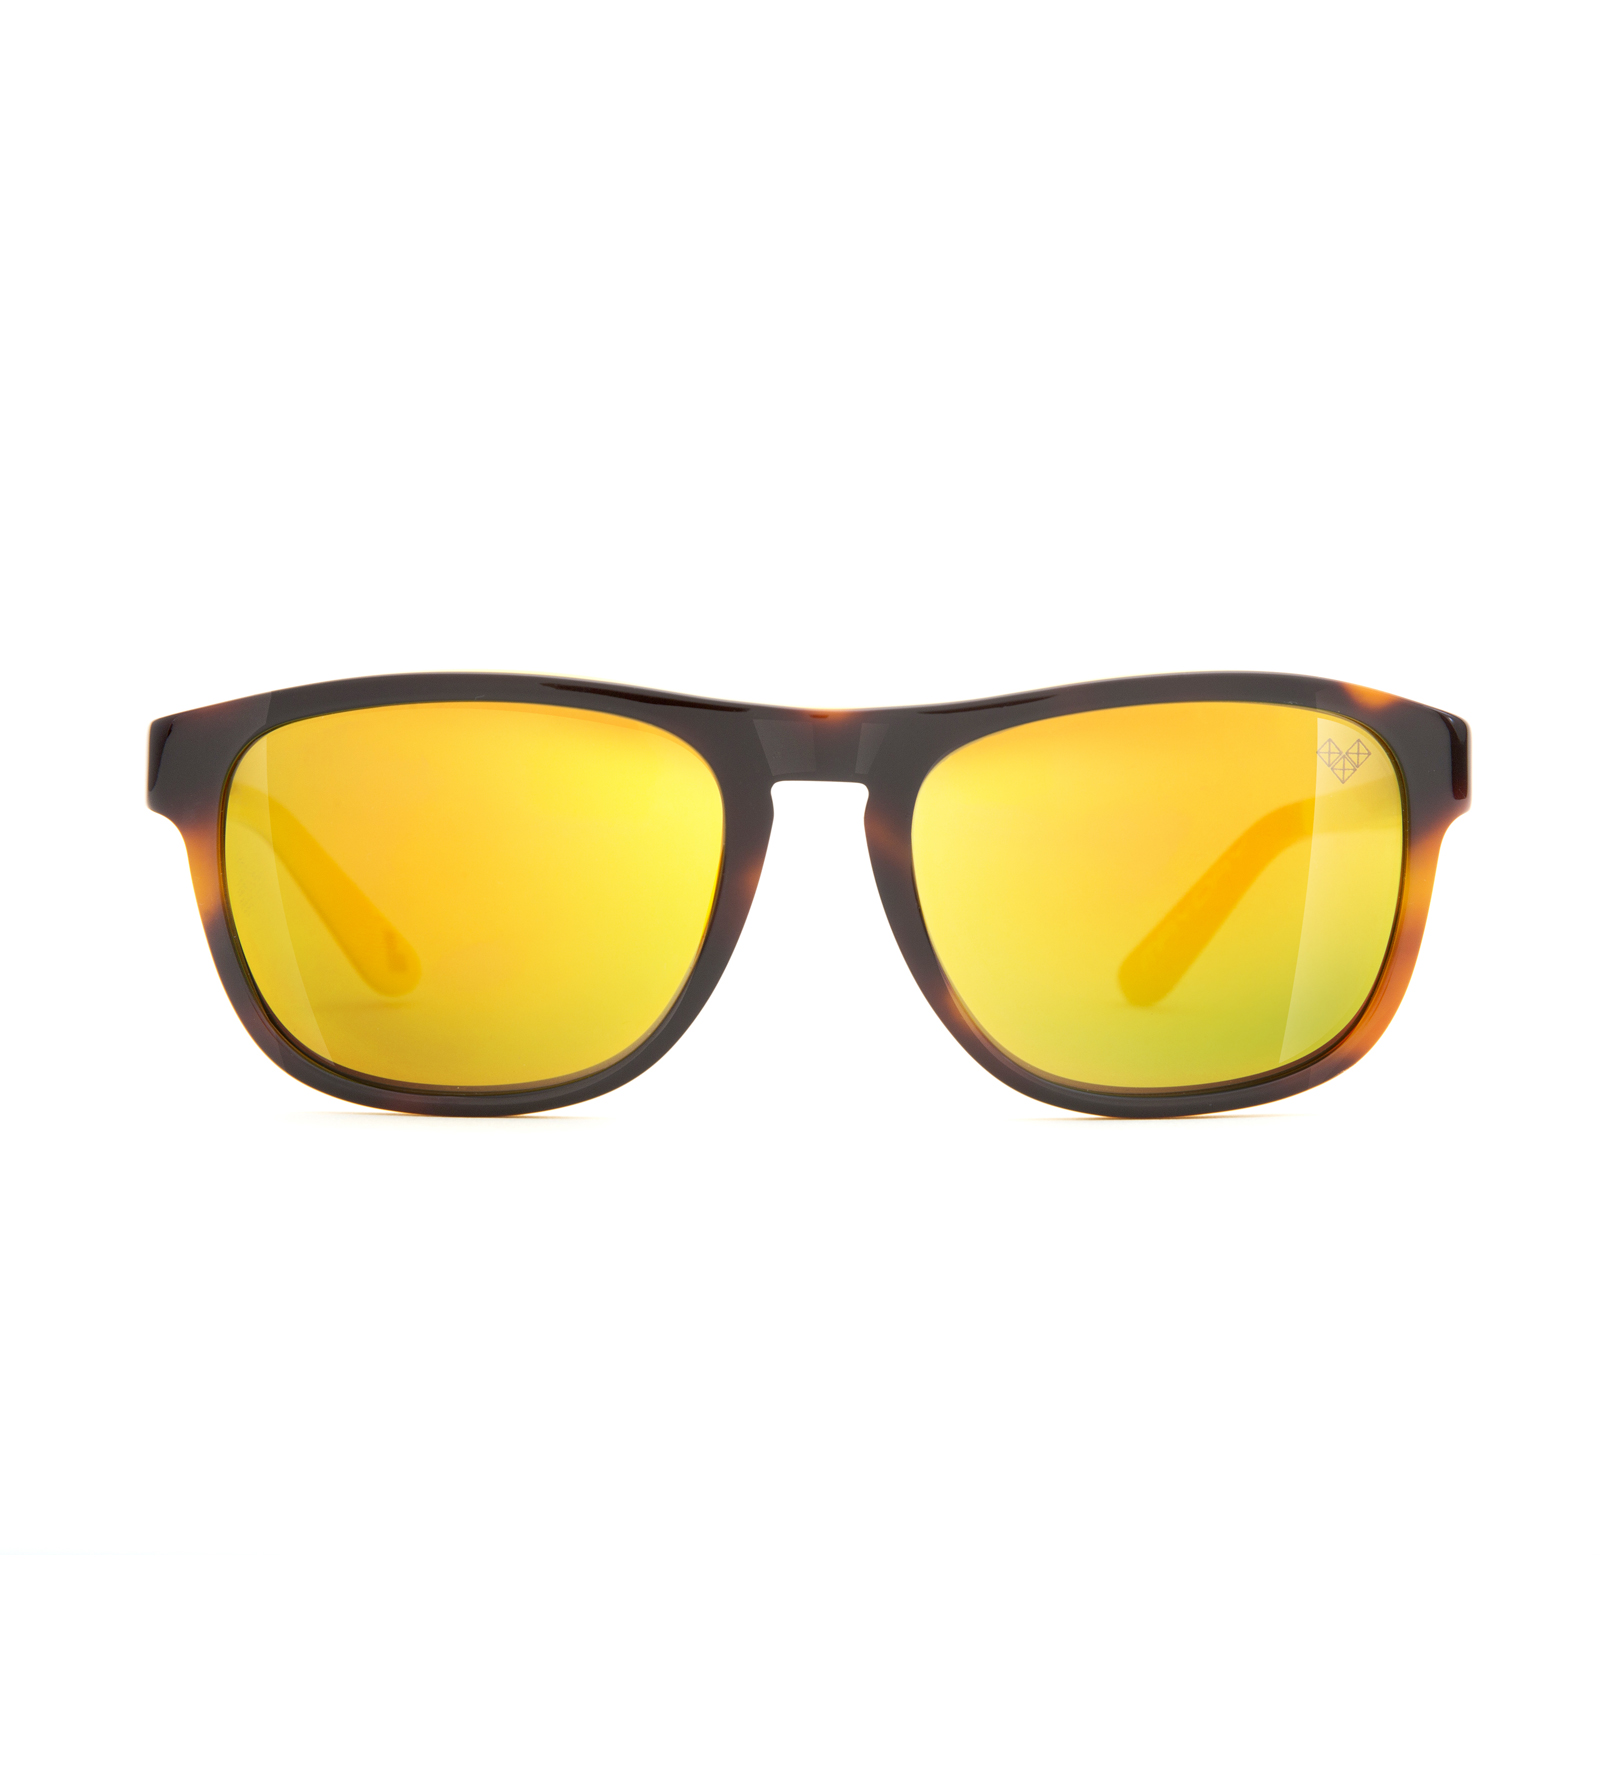 MAYDAY-Md4Y with Yellow Mirror Coating Lenses